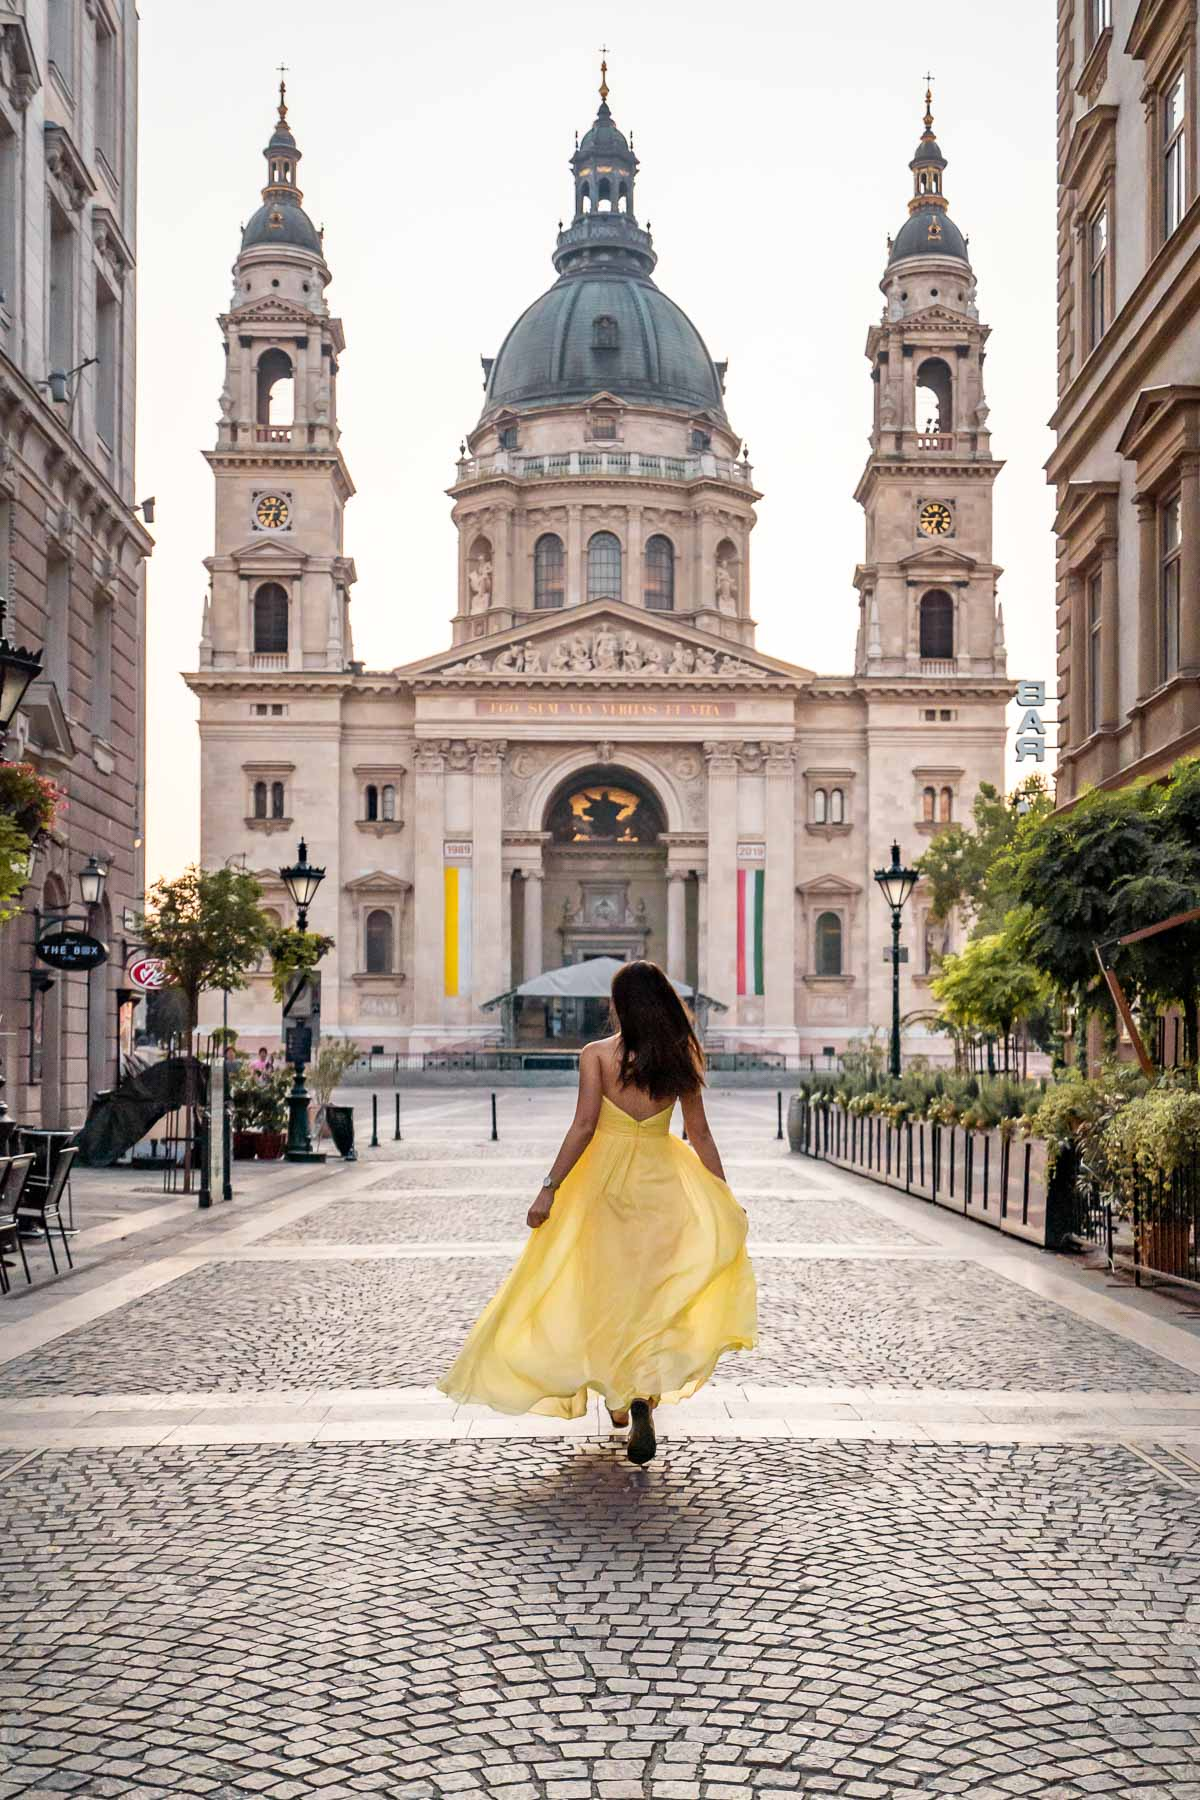 Girl in a yellow dress running towards the St. Stephen's Basilica in Budapest